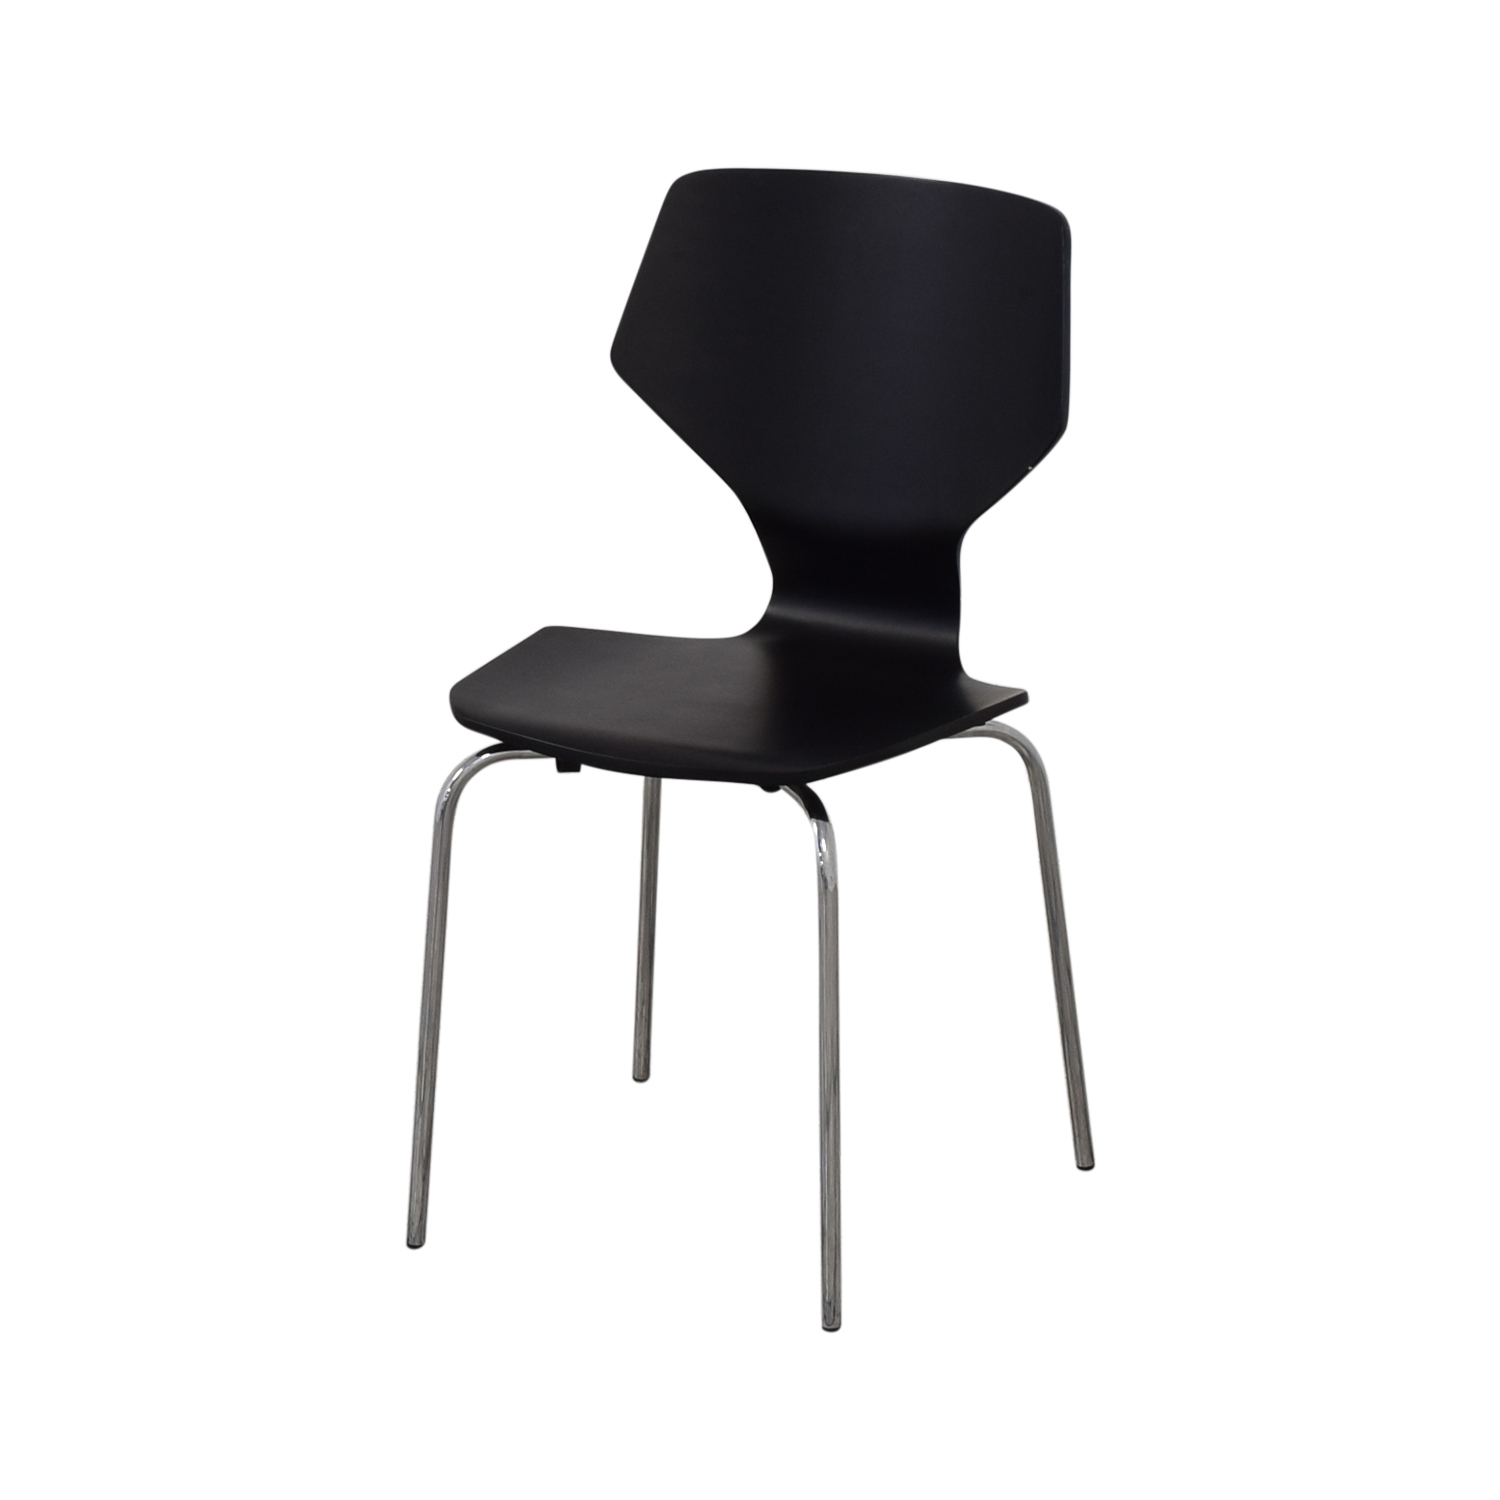 shop Room & Board Room & Board Pike Dining Chairs online